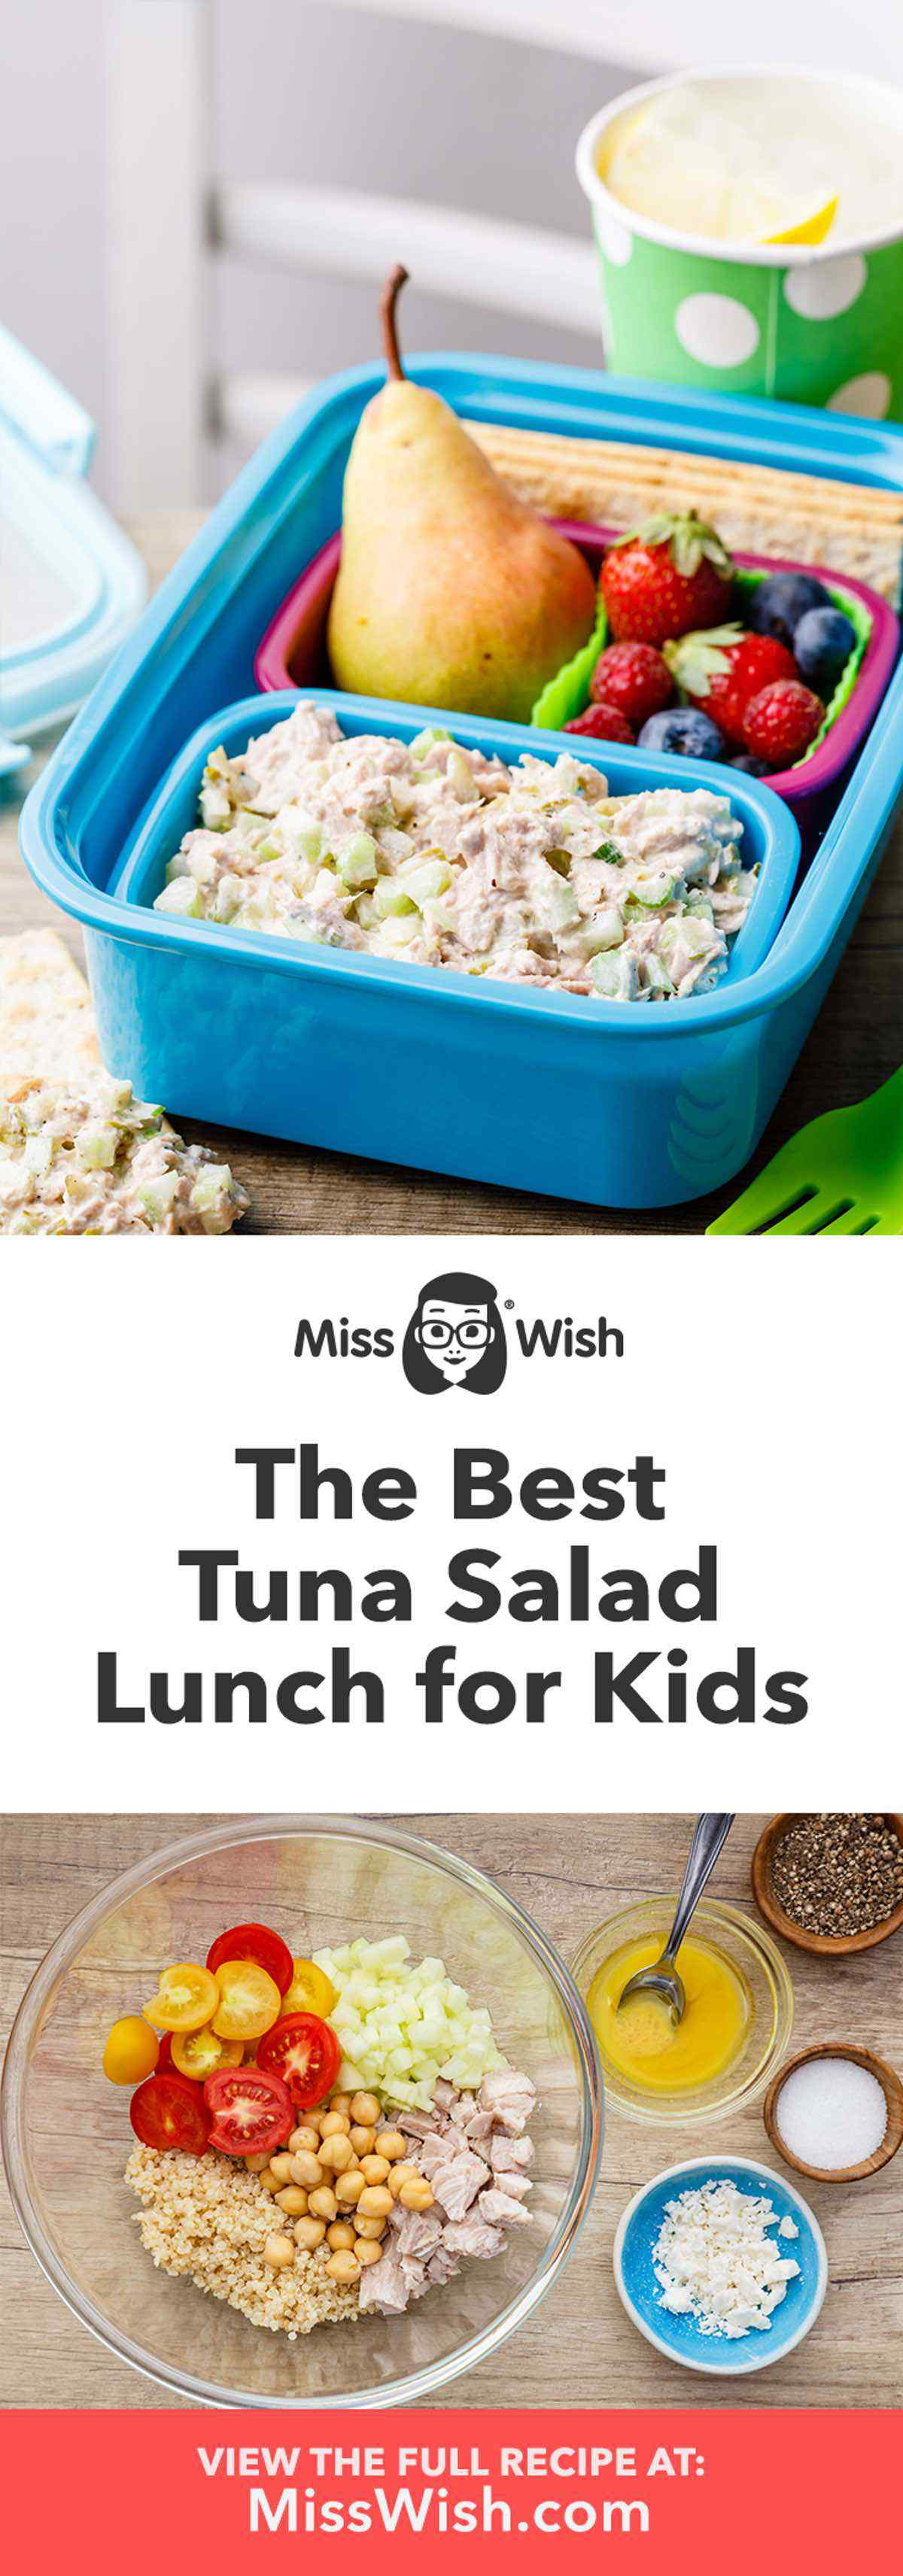 Tuna Salad Lunch for Kids